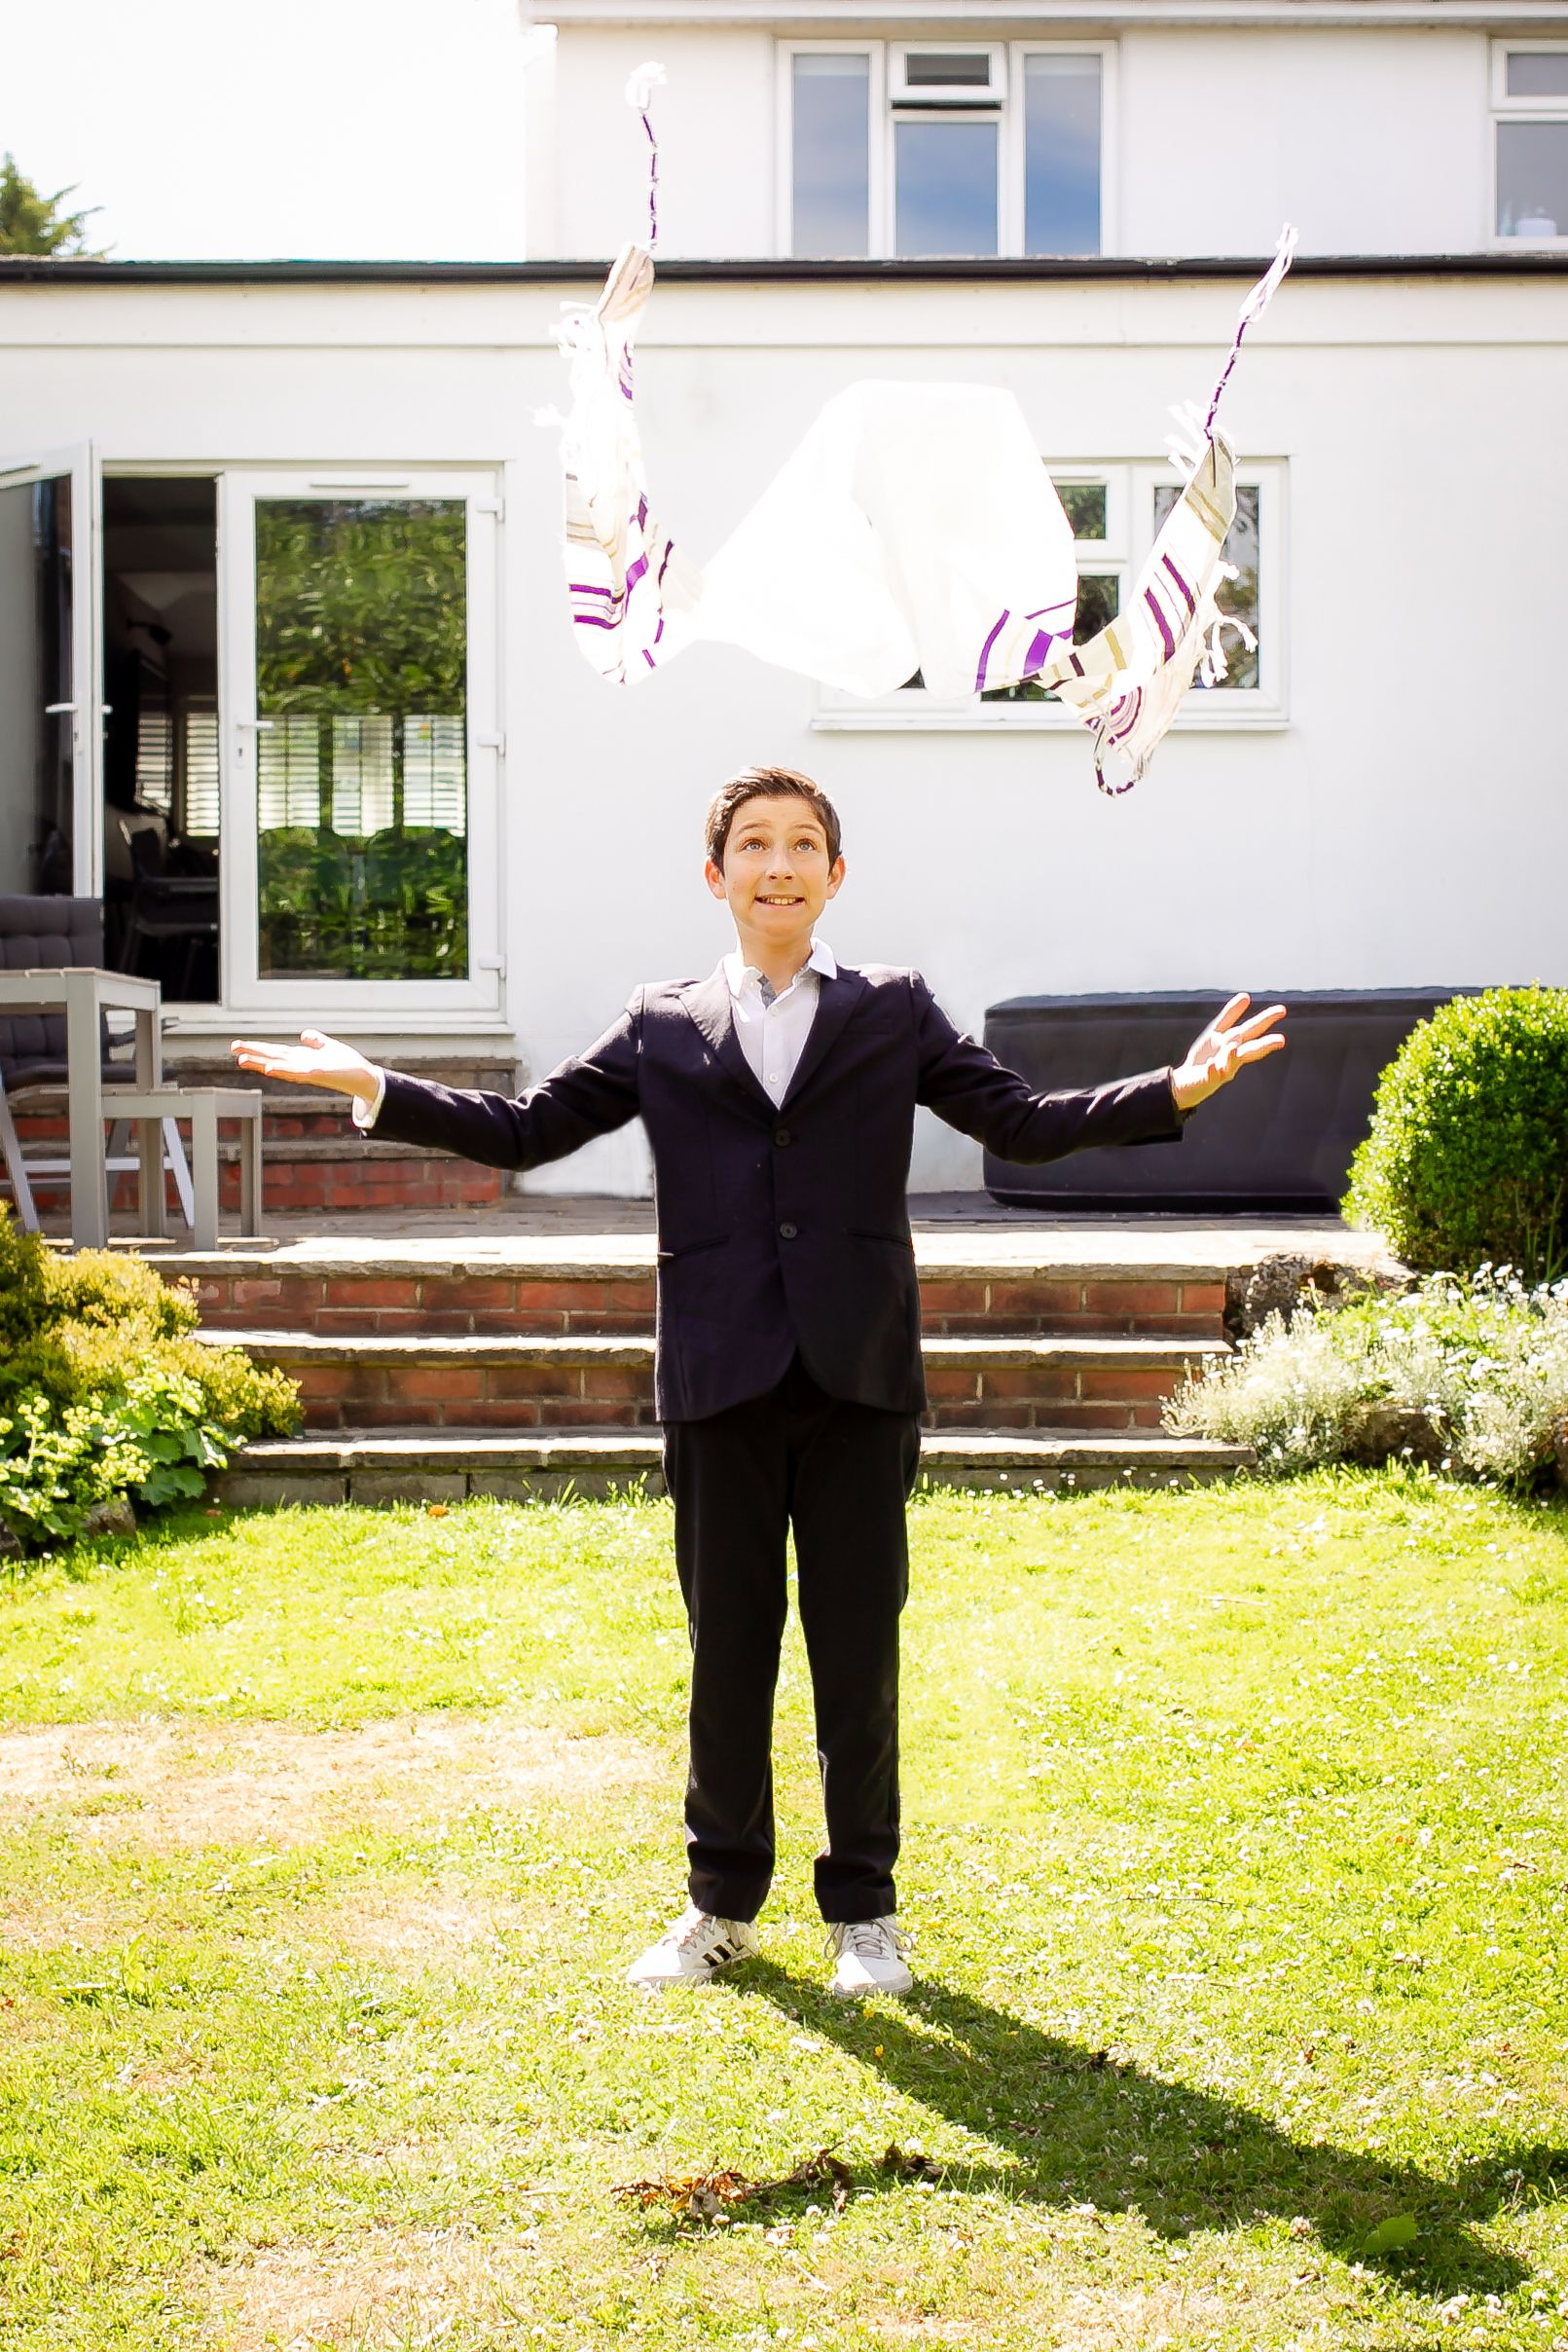 A Bar Mitzvah boy throws his tallis in the air in his garden - Bar Mitzvah Photography